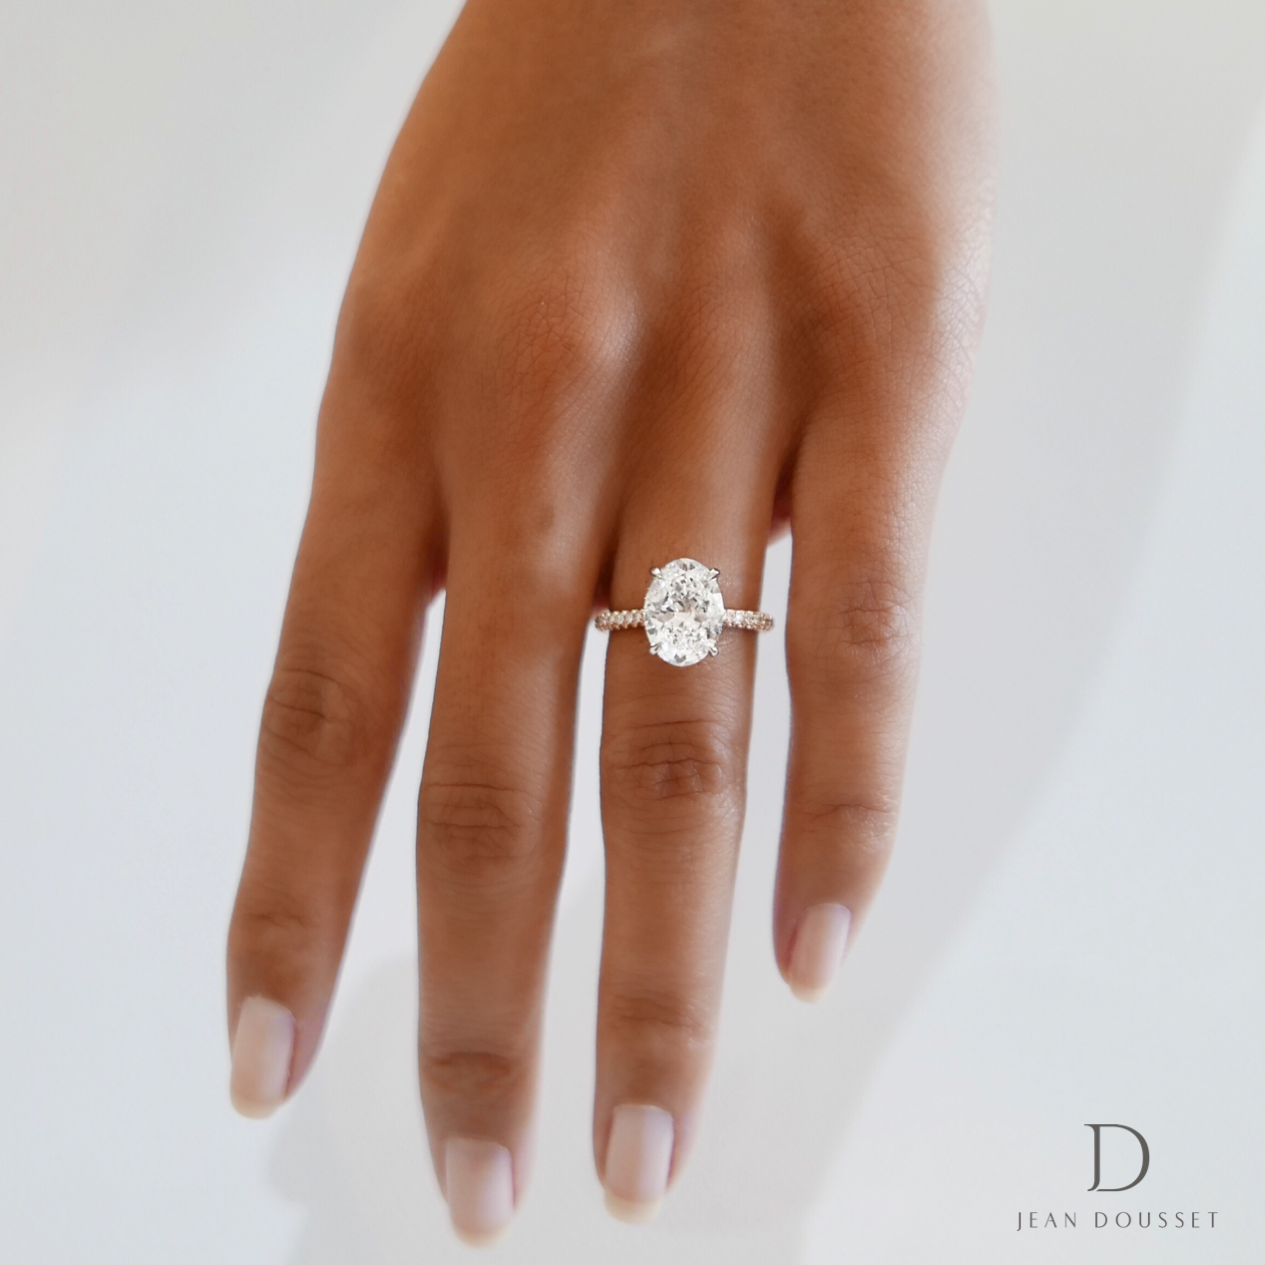 The Luna Engagement Ring With An Oval Cut Diamond Exclusively From